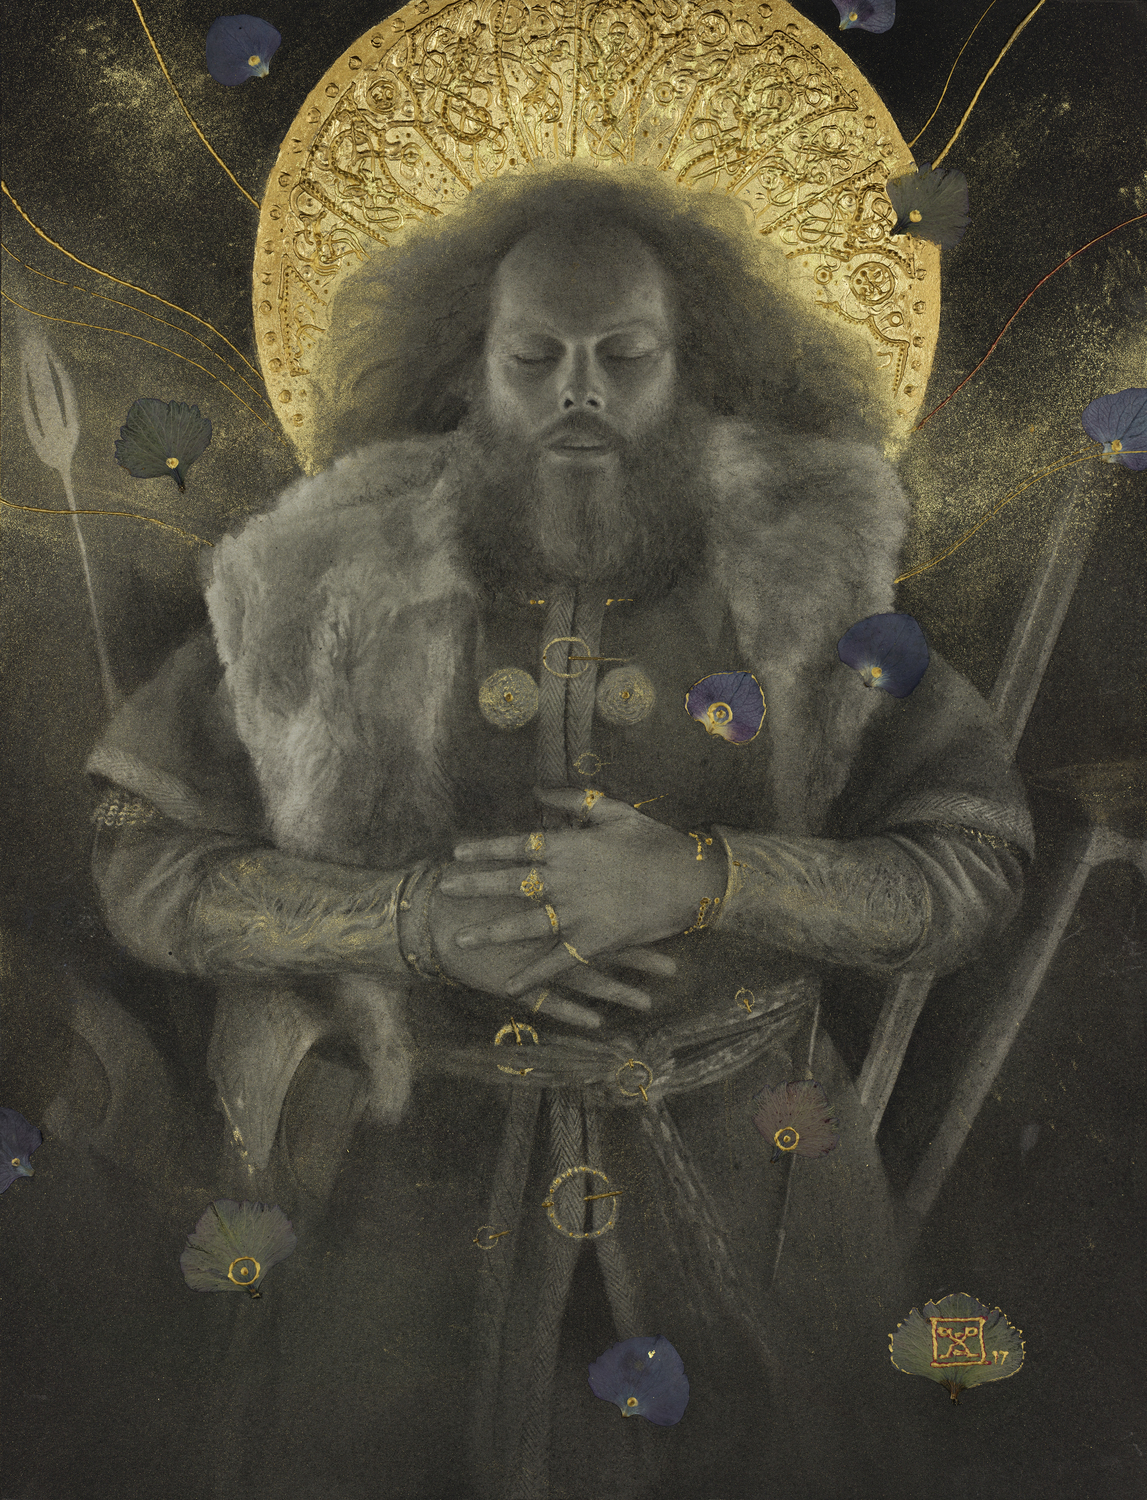 Beowulf - Beowulf's Funeral Artwork by Yoann Lossel